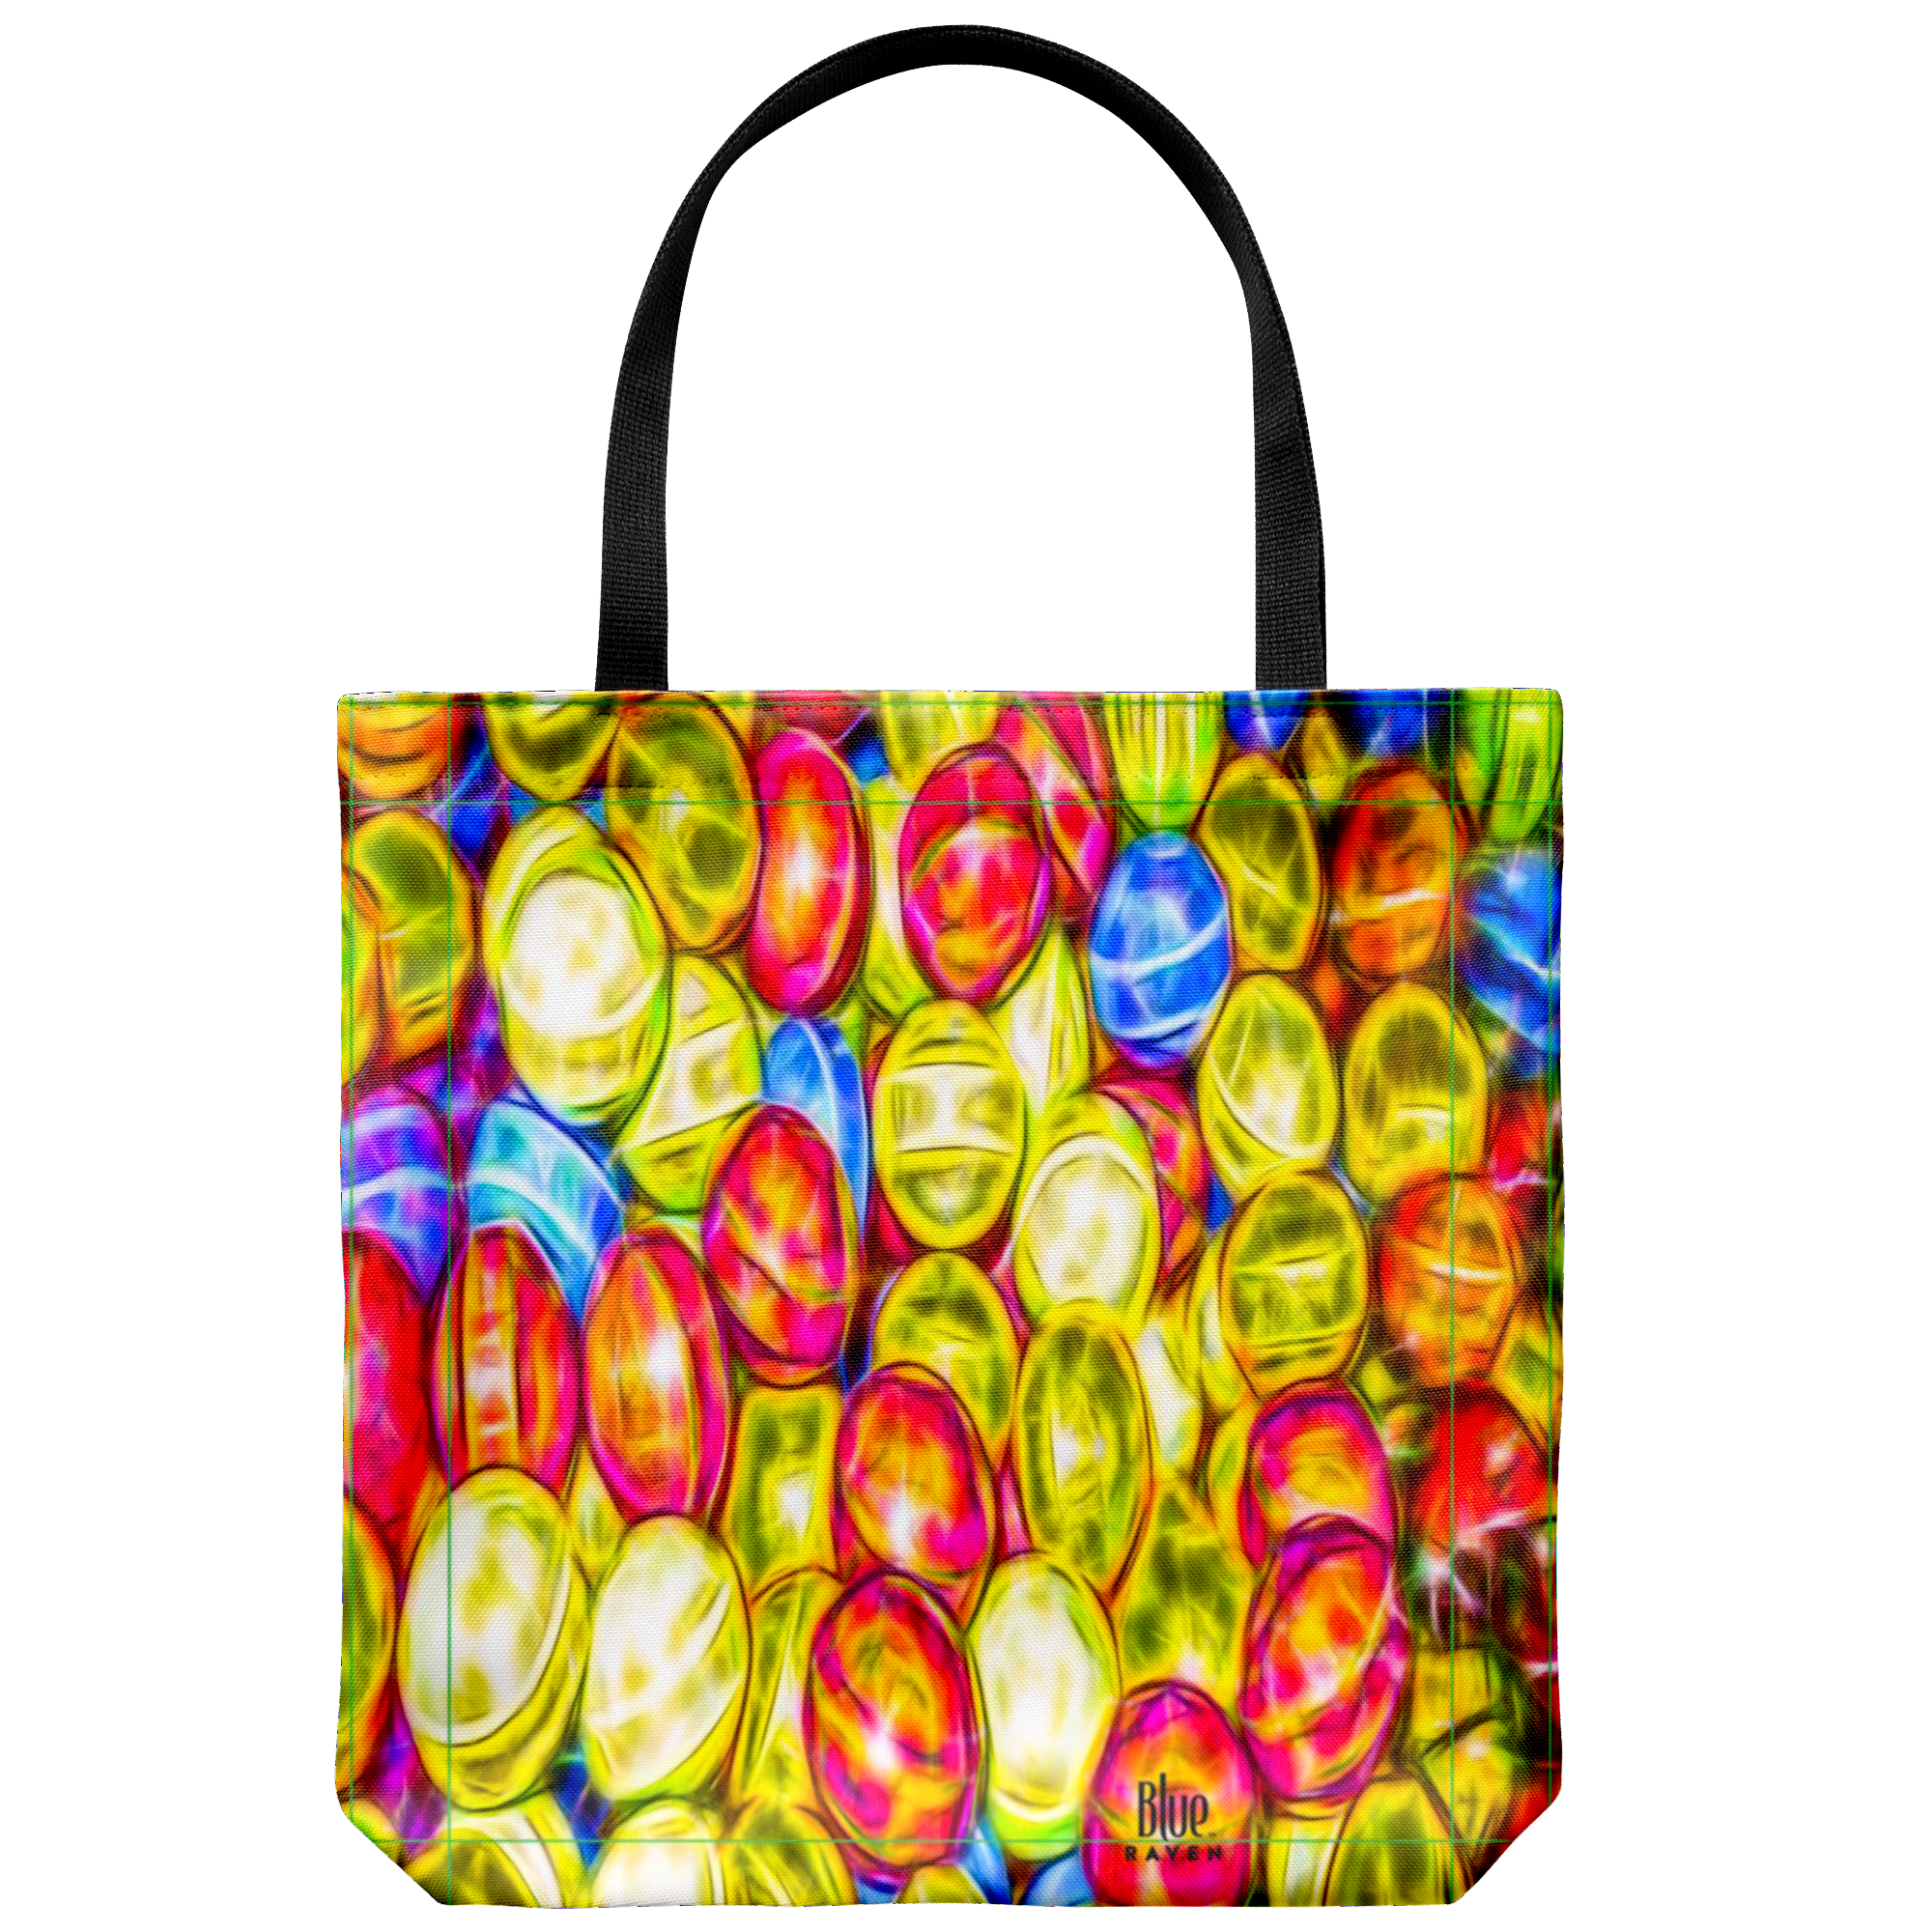 sour ball sweetness - tote